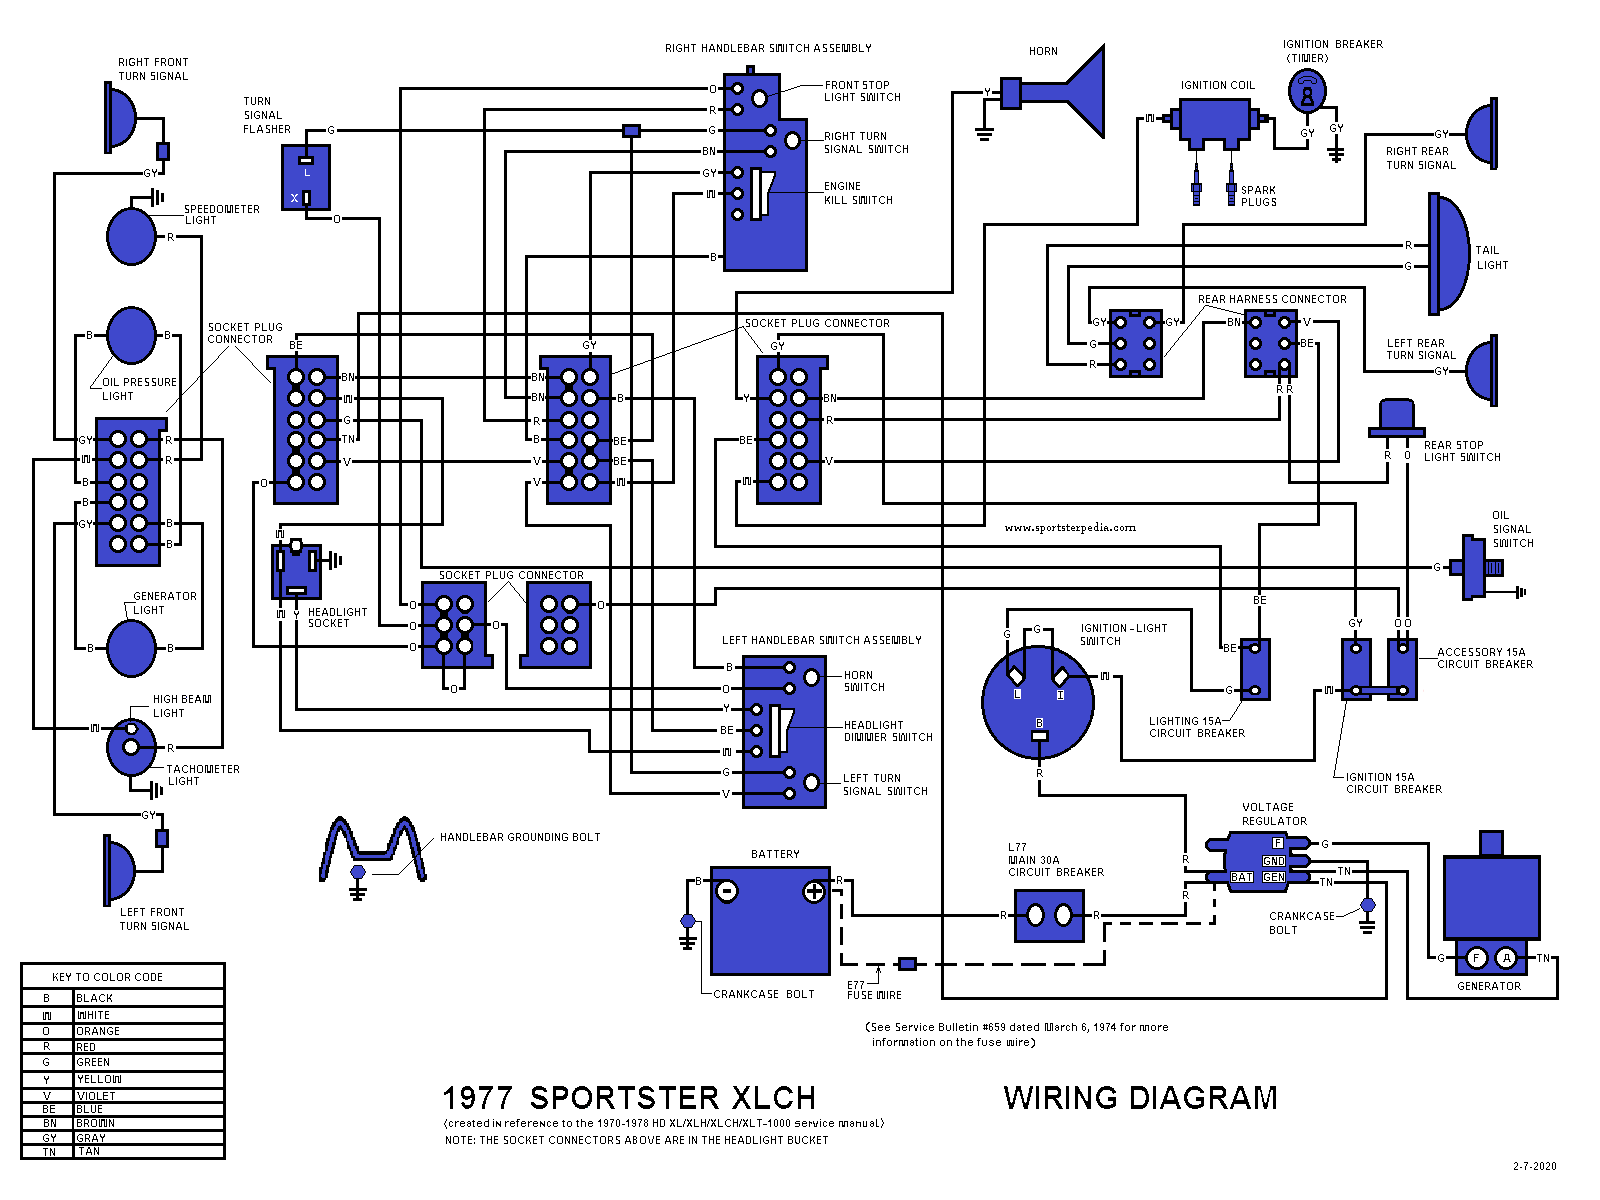 Ironhead Illustrated Wiring Diagrams - The Sportster and Buell Motorcycle  Forum - The XLFORUM® | Sportster 1977 Xlt Wiring Diagram |  | XL Forum